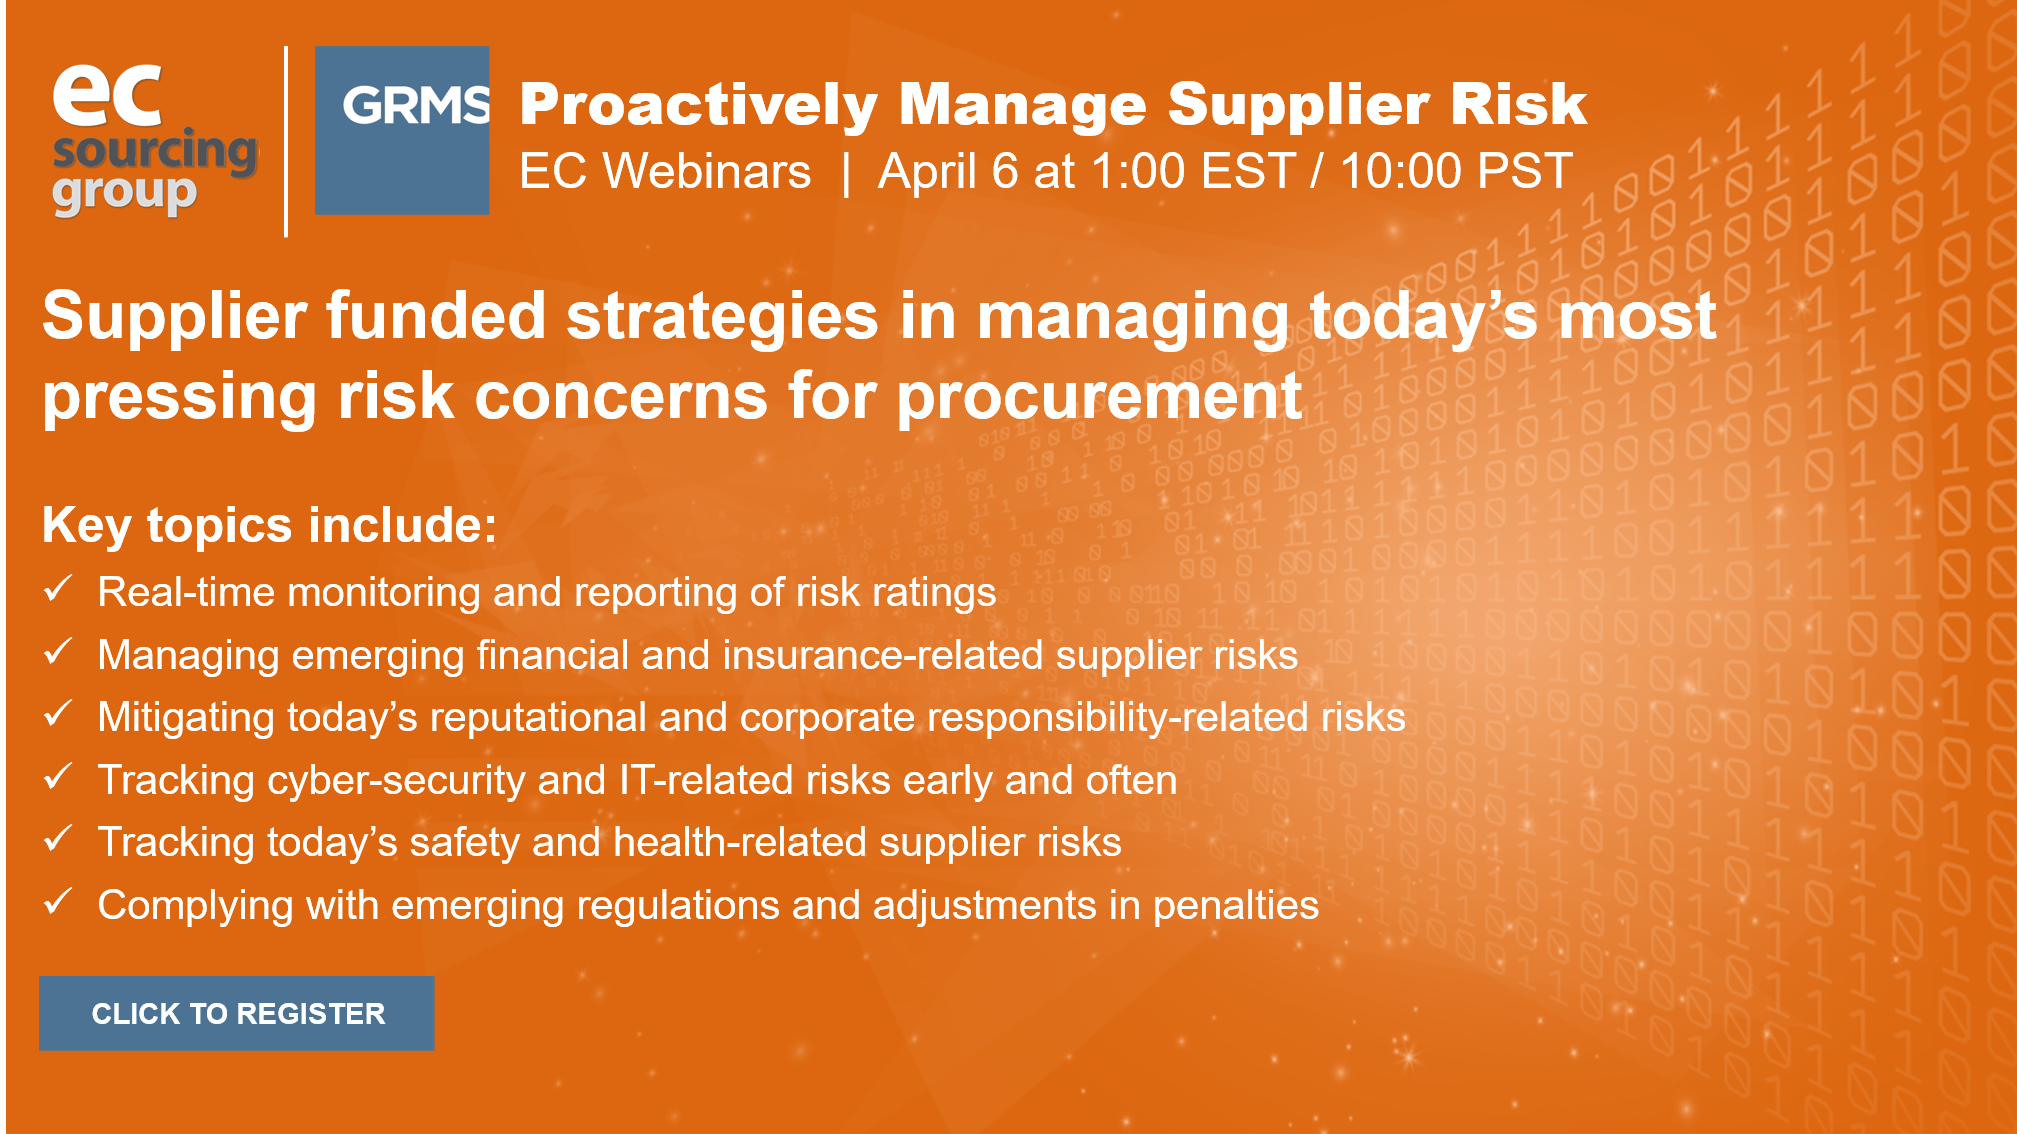 Proactively manage supplier risk